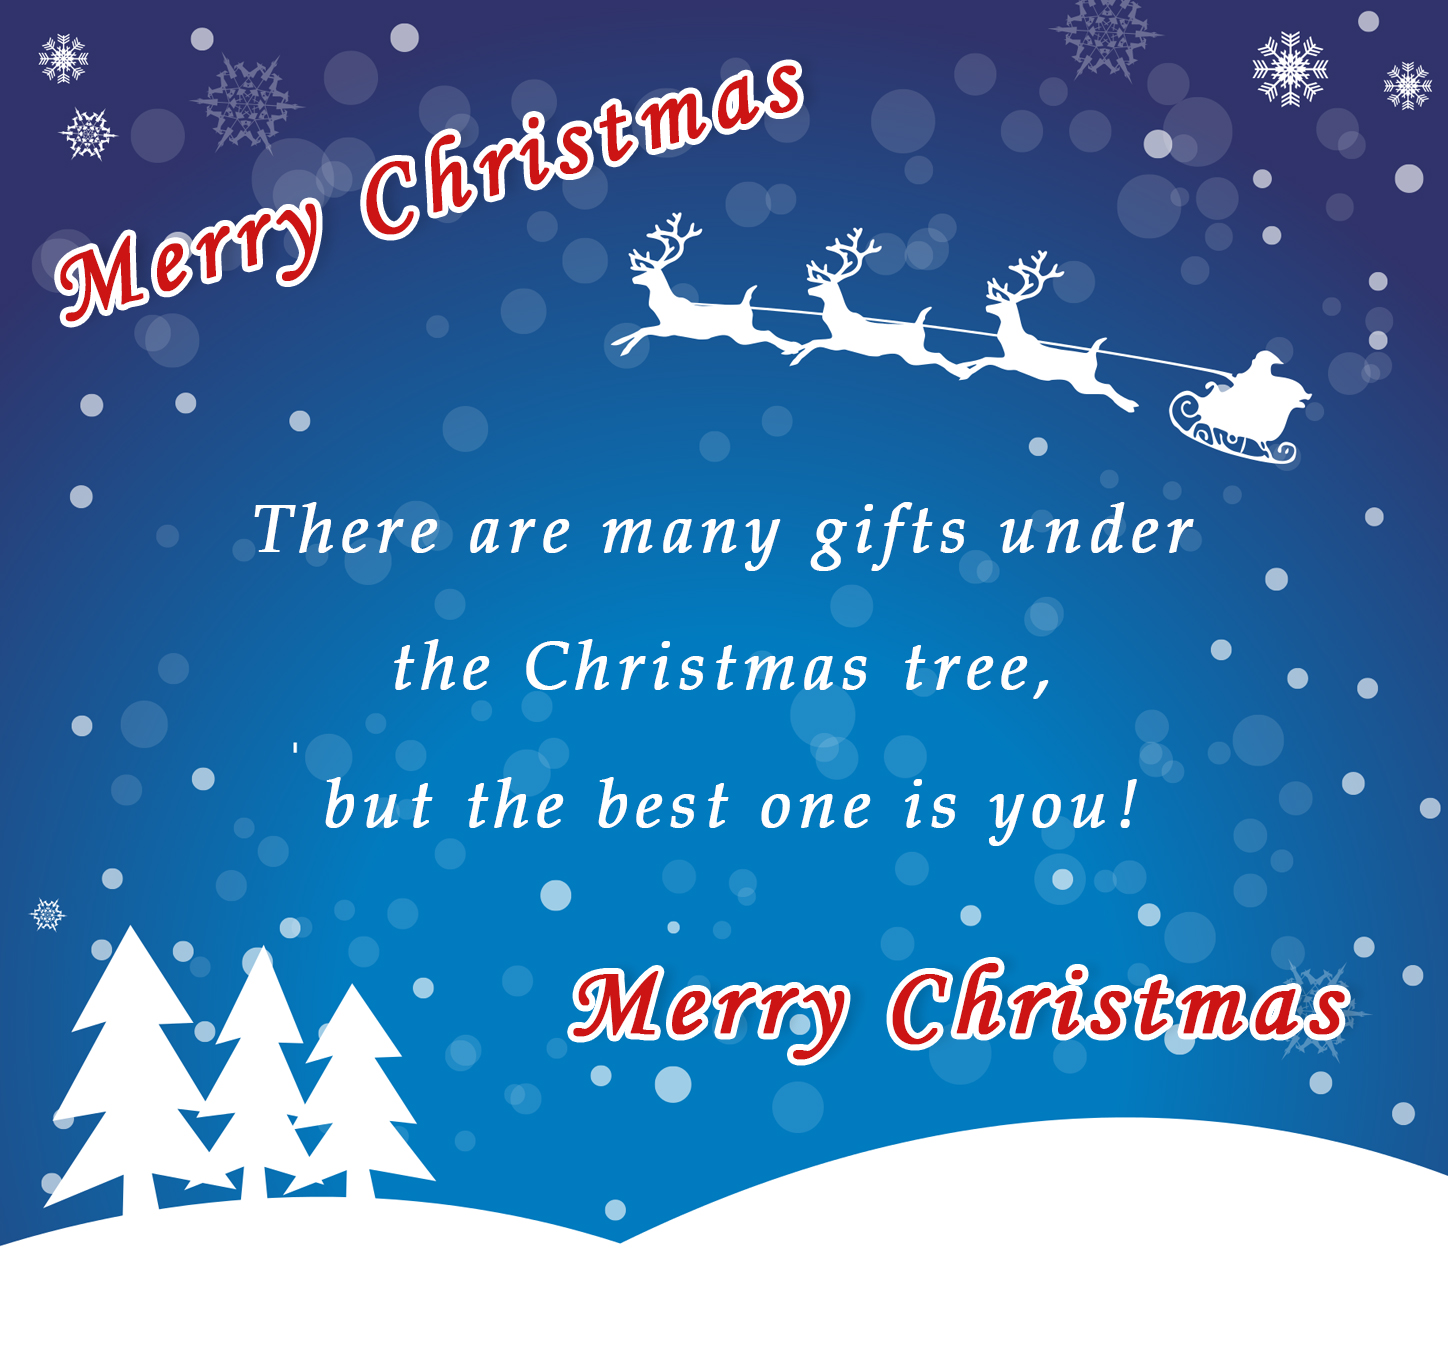 MERRY CHRISTMAS IMAGES, CHRISTMAS IMAGES 2018, WISHES